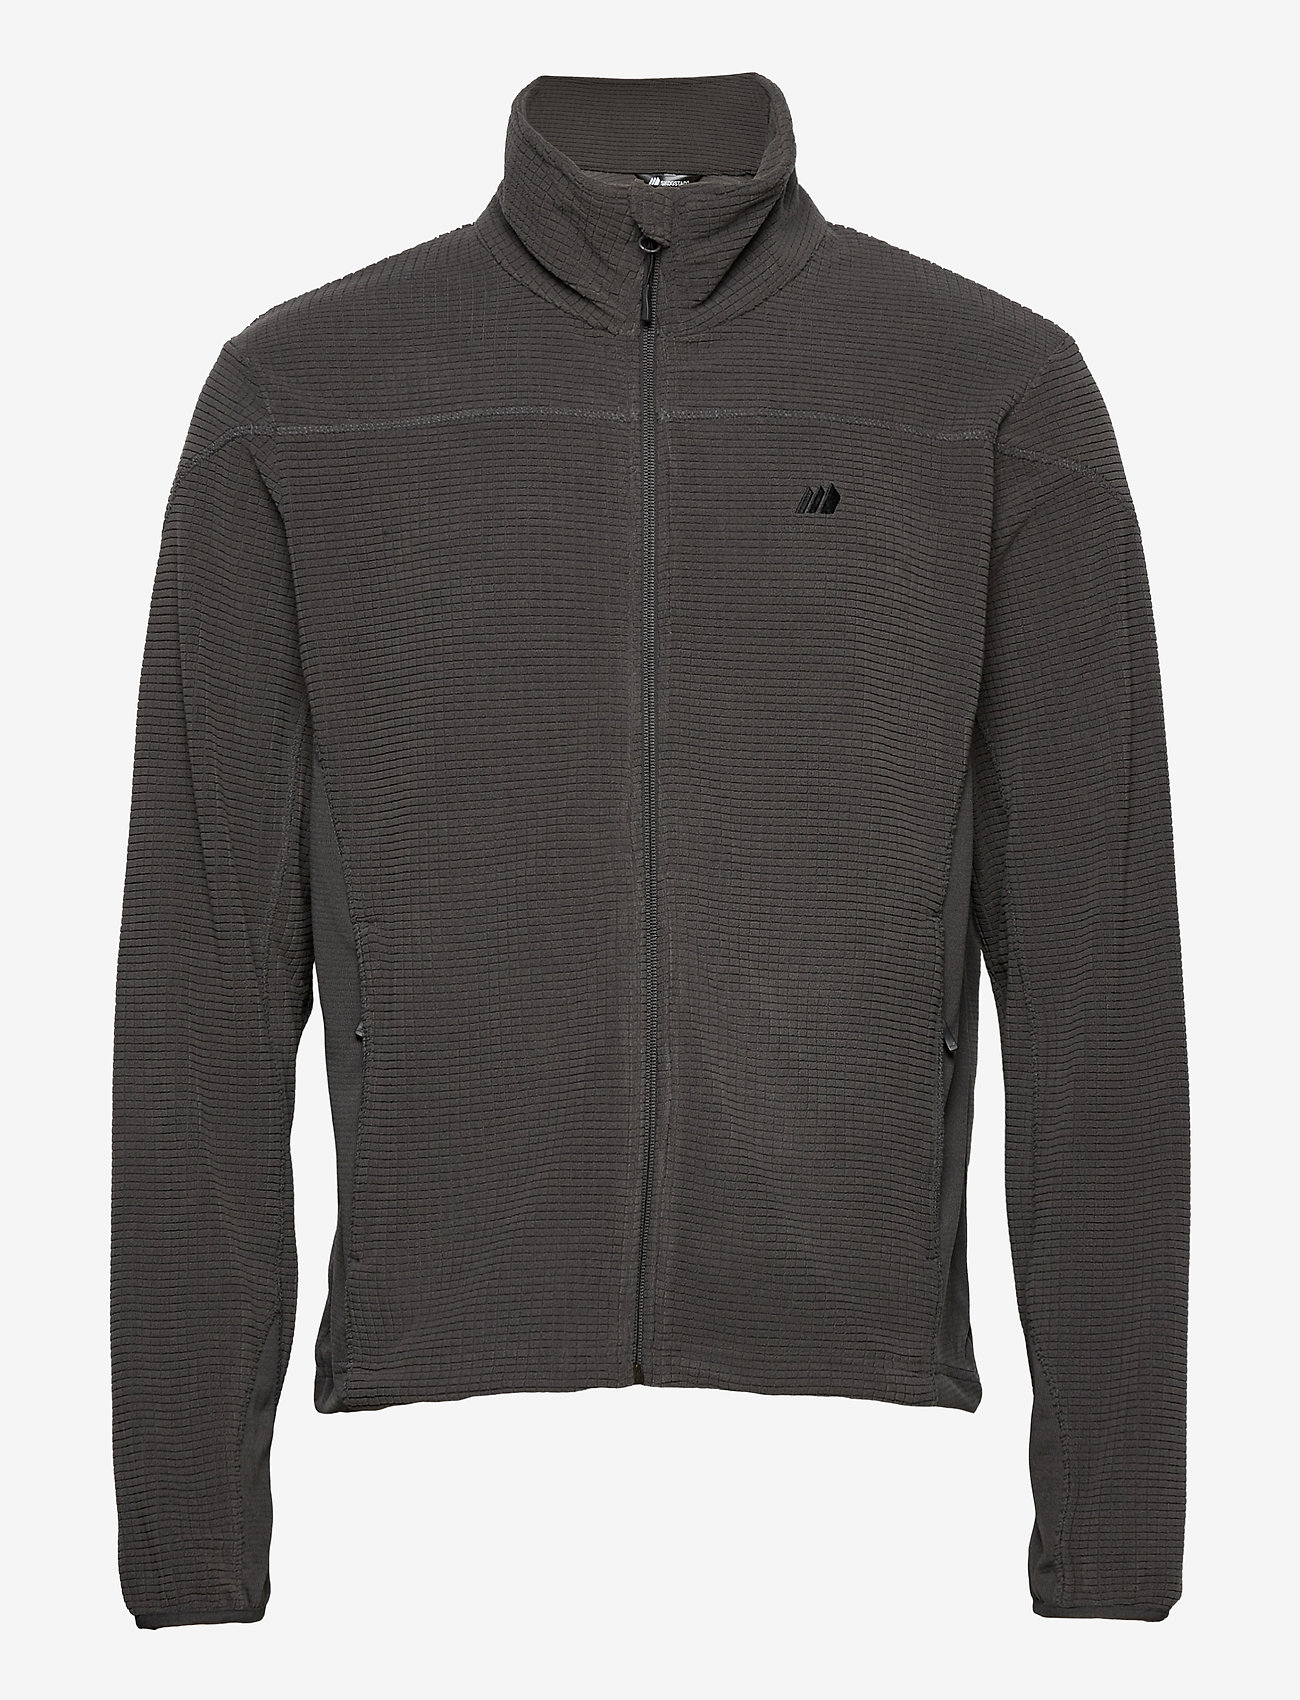 Skogstad - Åelva fleece jacket - basic-sweatshirts - dark grey - 0